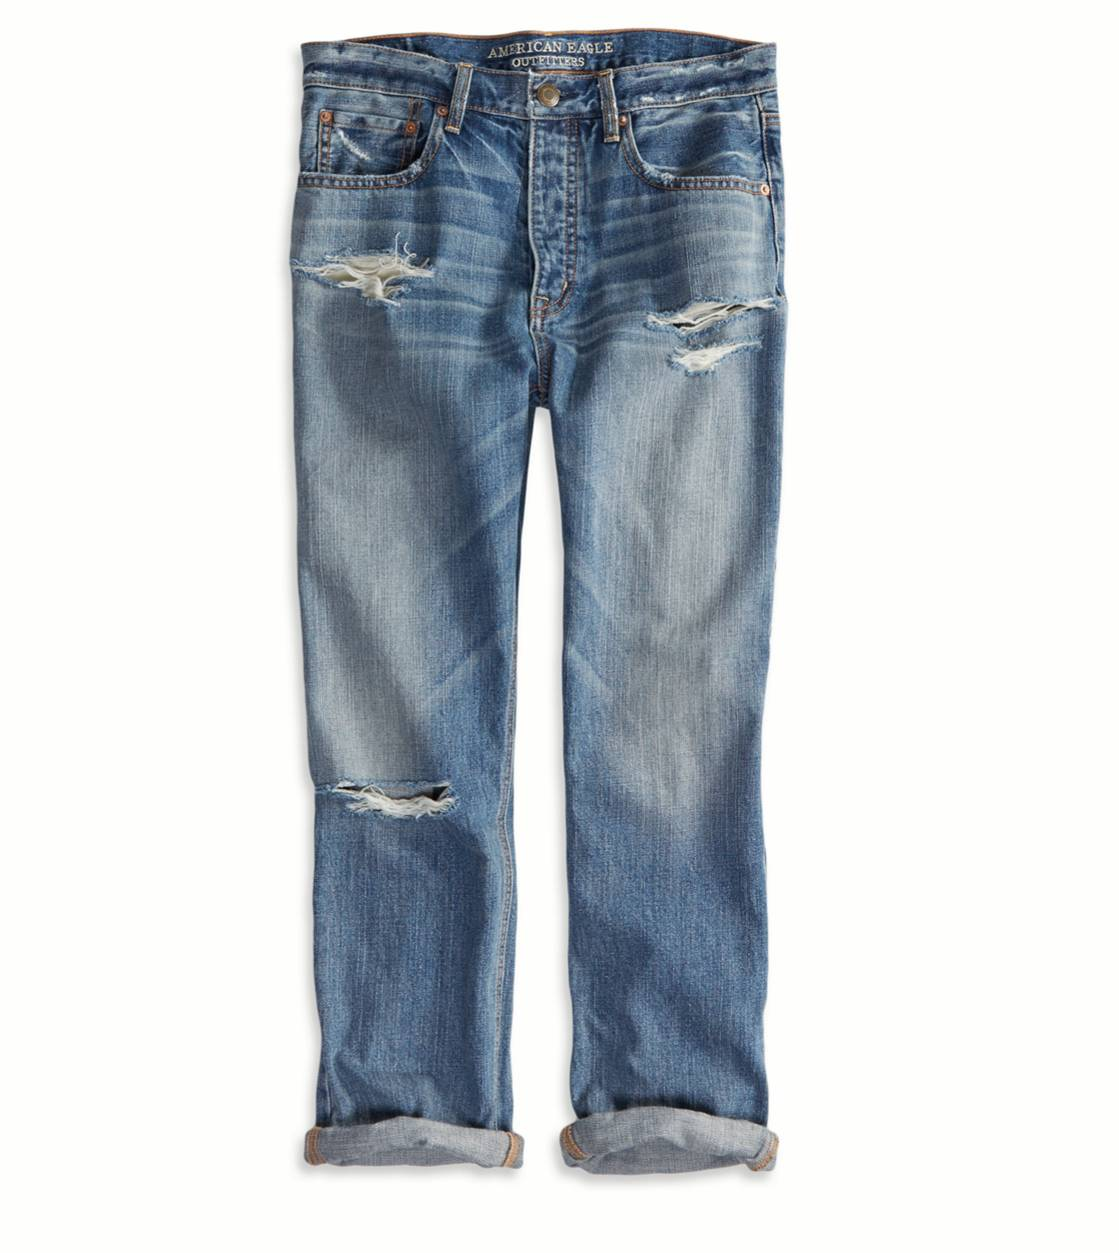 Tomboy Jean   American Eagle Outfitters